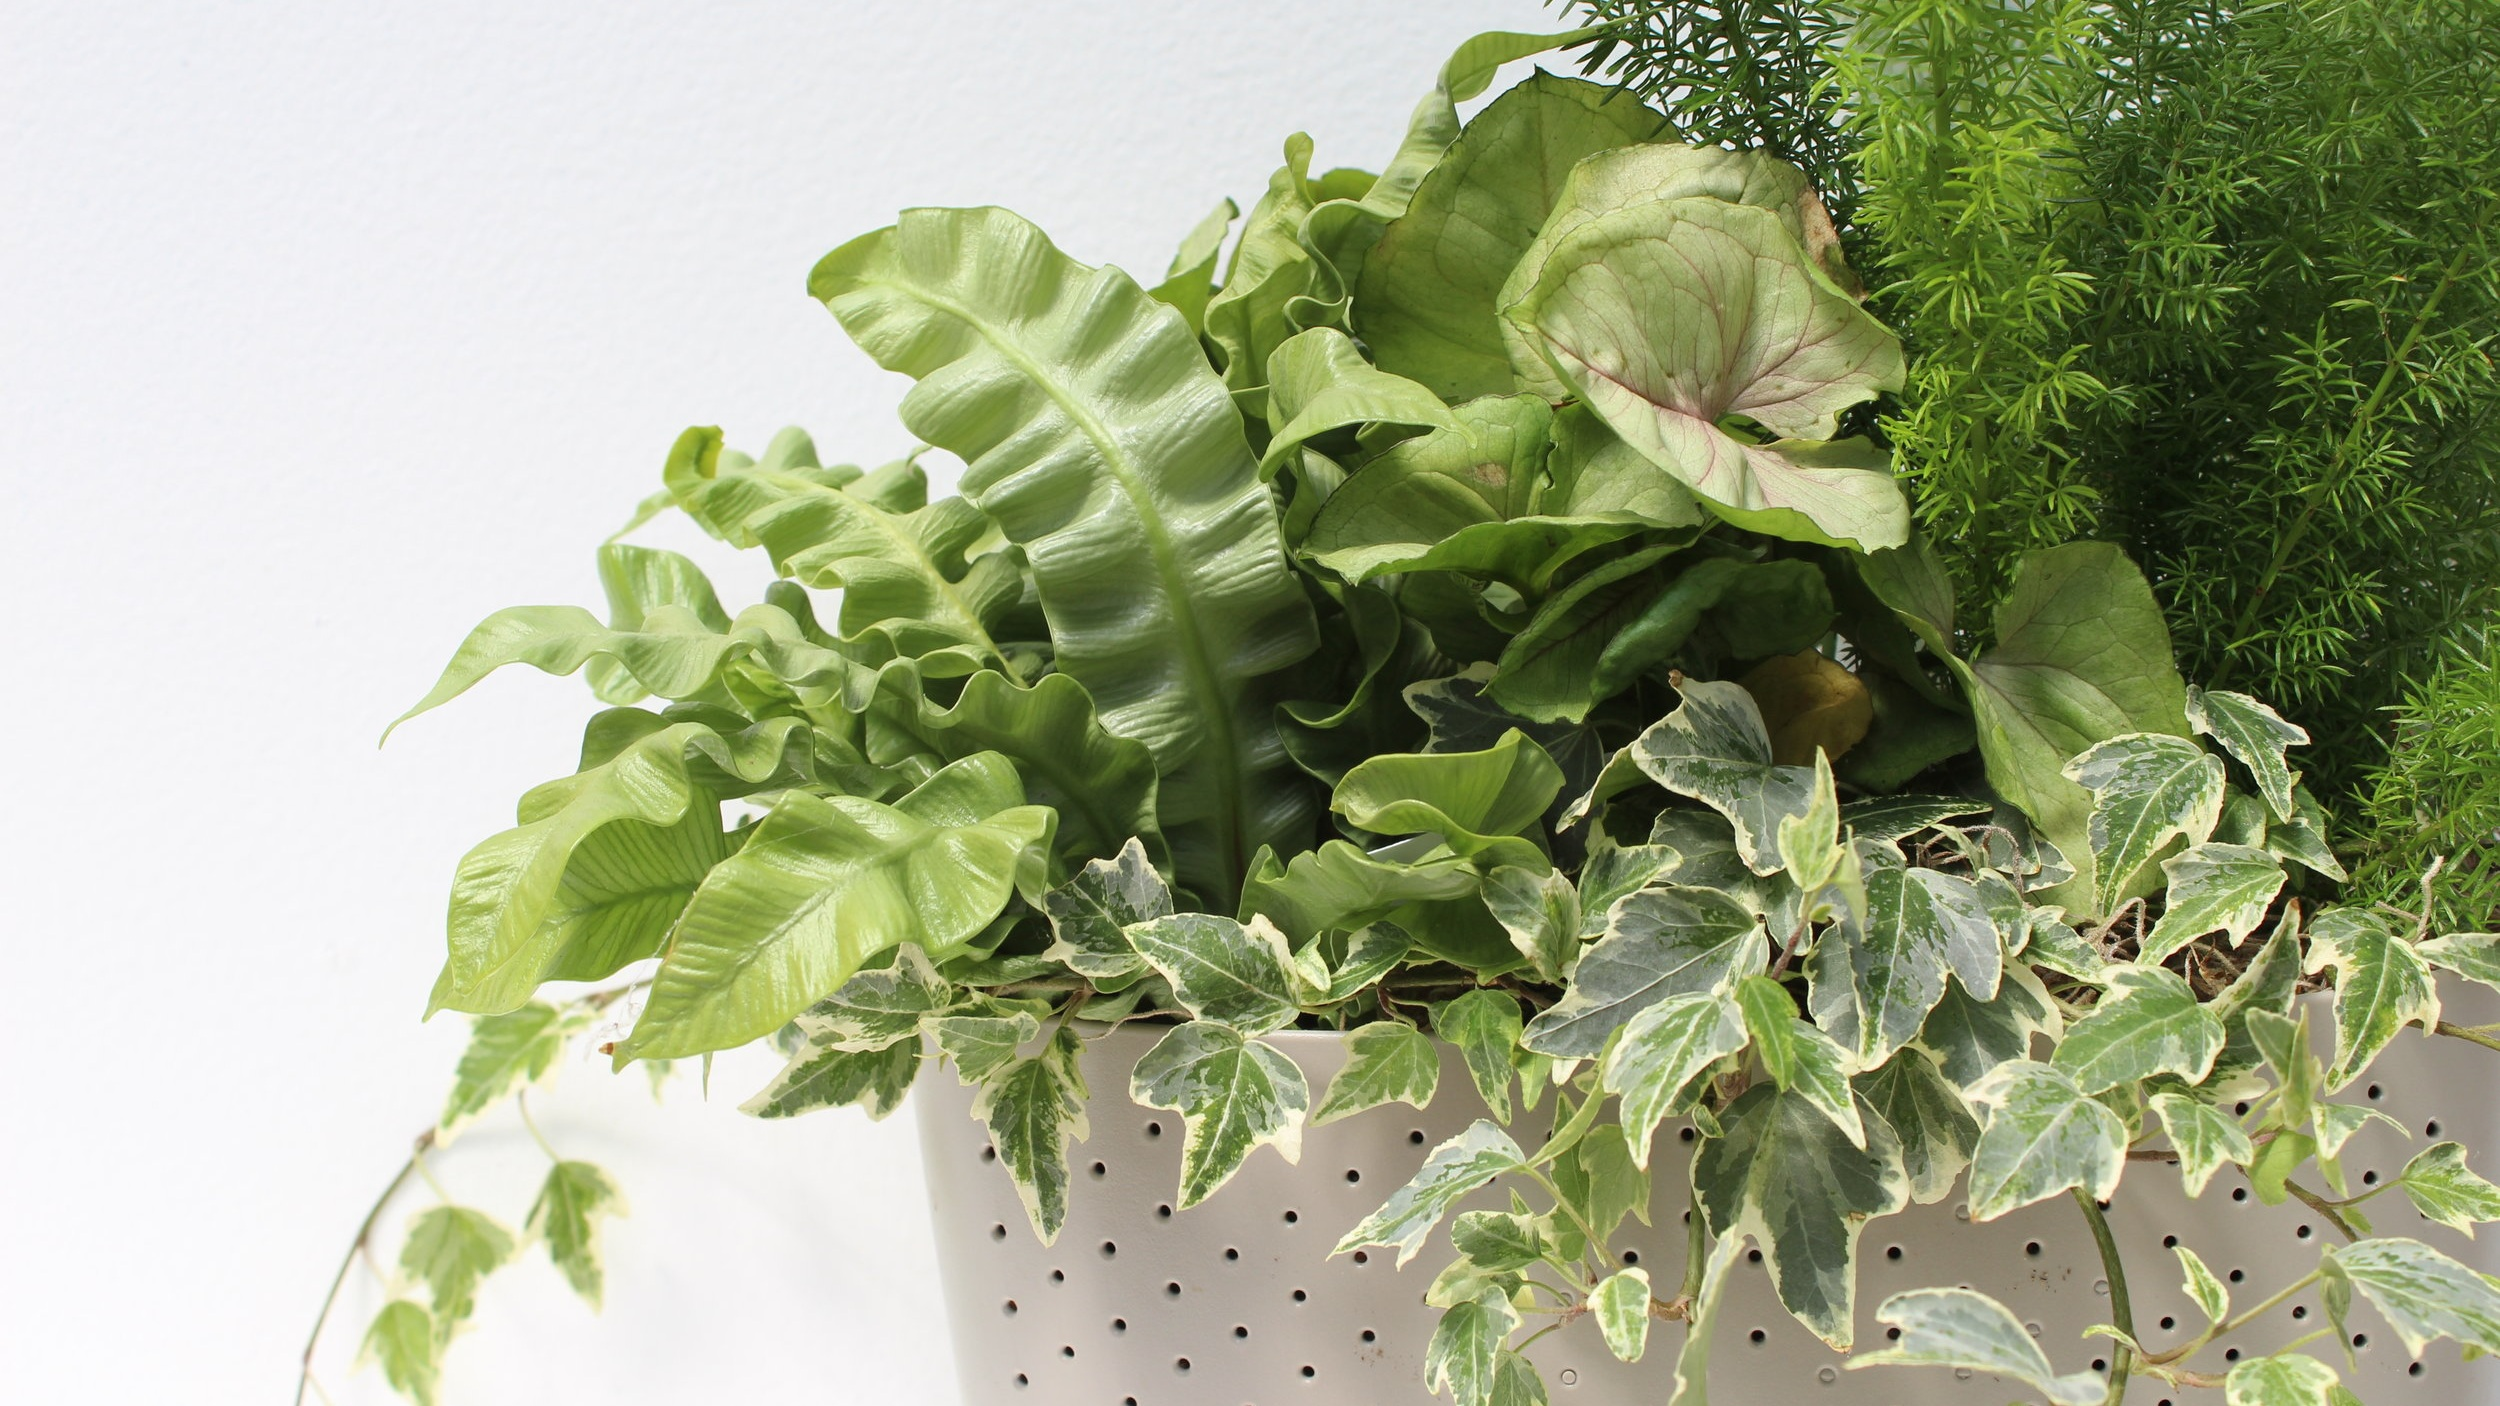 Build your own living wall - with WallyGro planters from Watson's